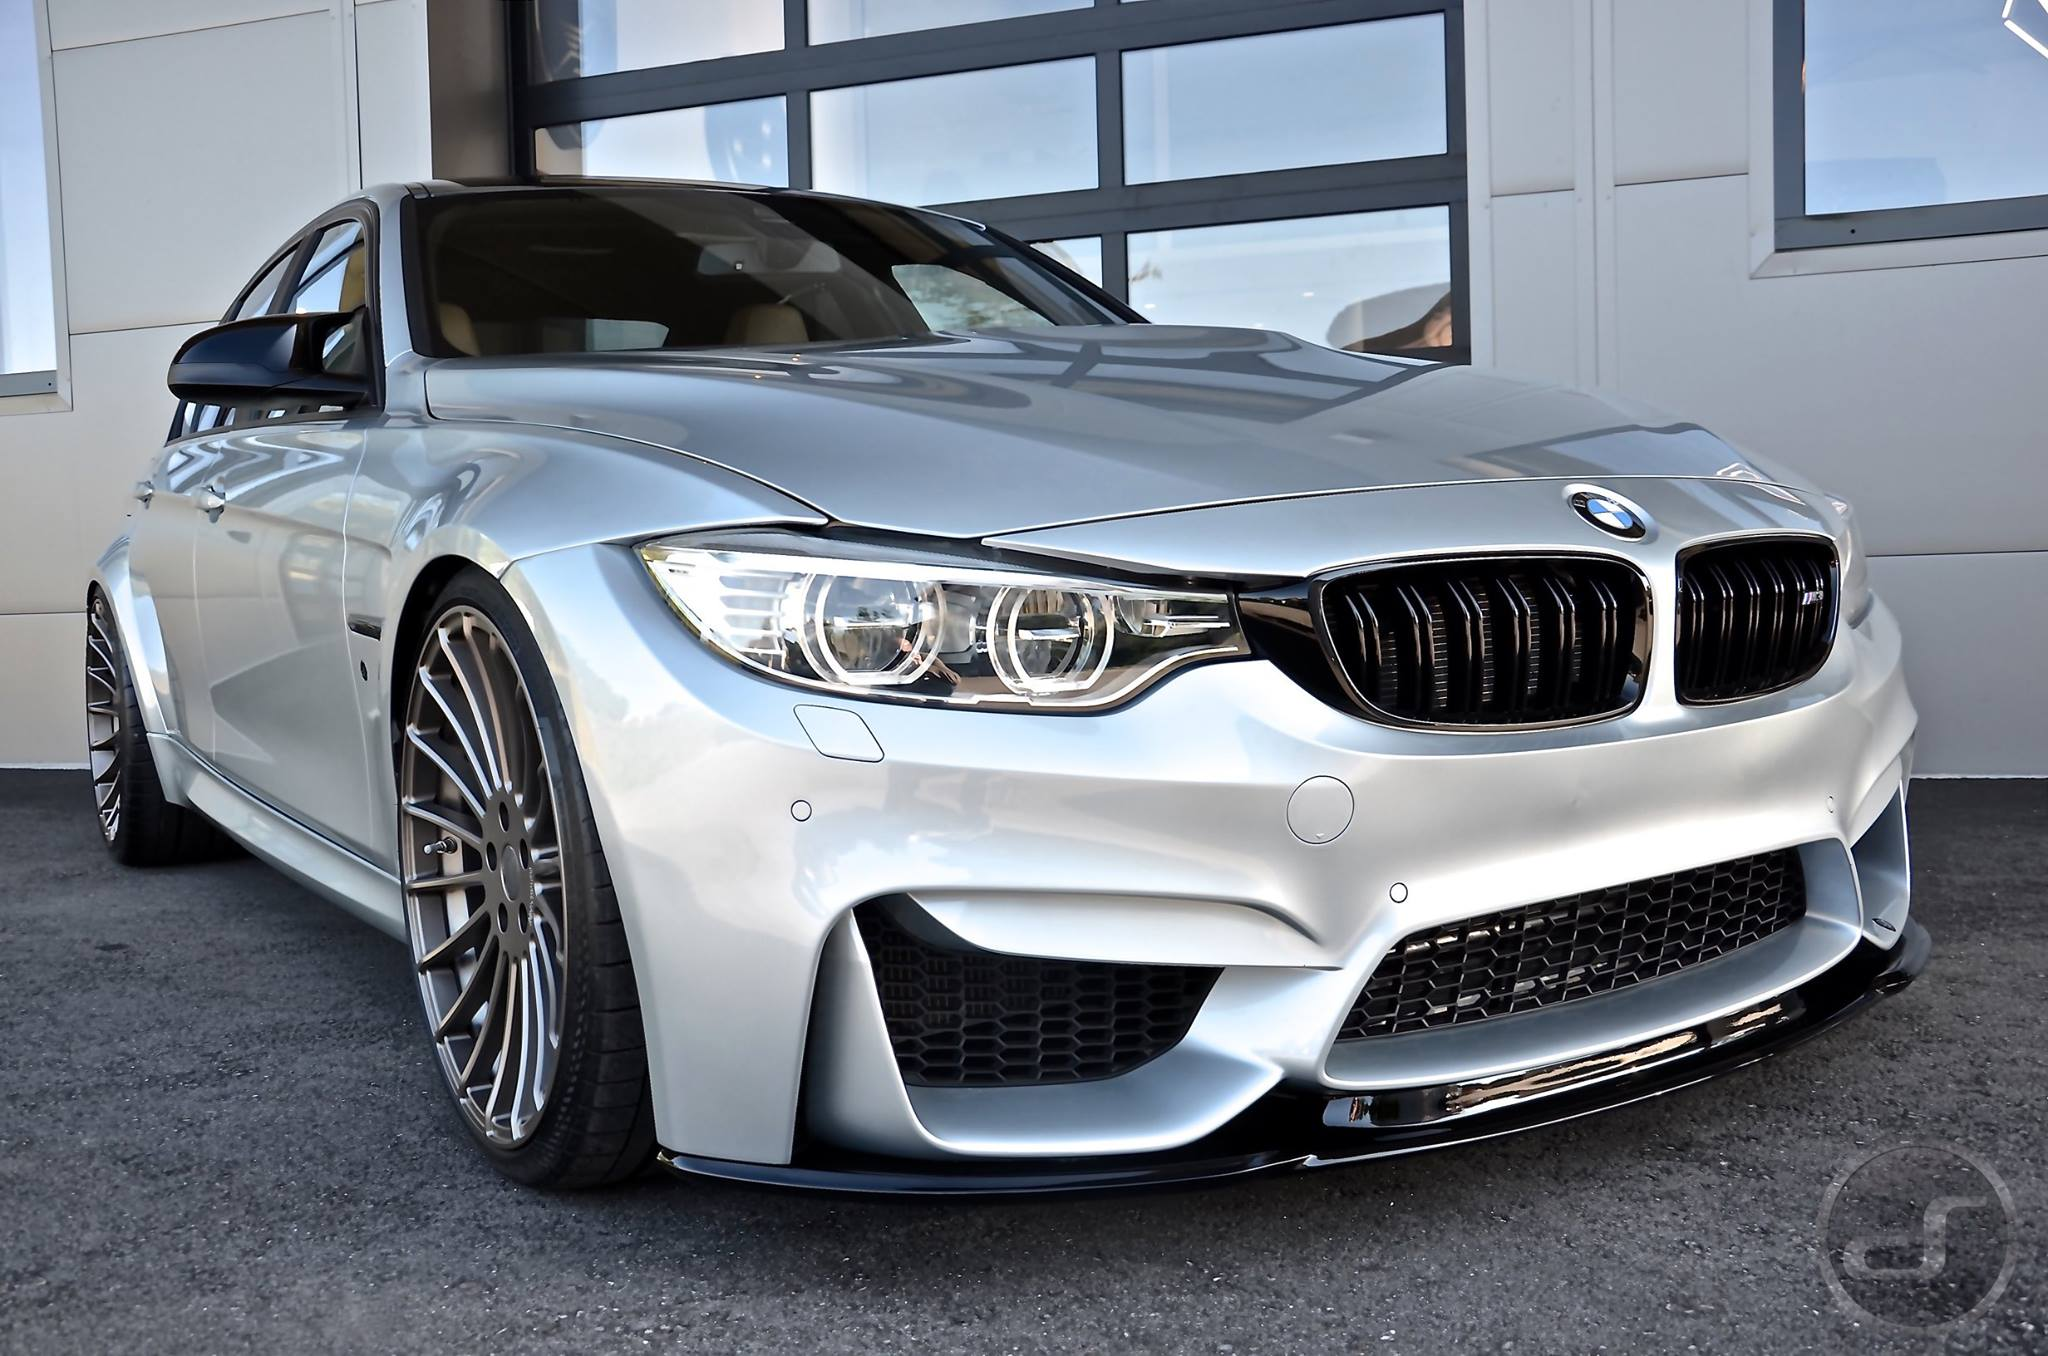 hamann bmw m3 f80 starke tuning limousine in silverstone. Black Bedroom Furniture Sets. Home Design Ideas